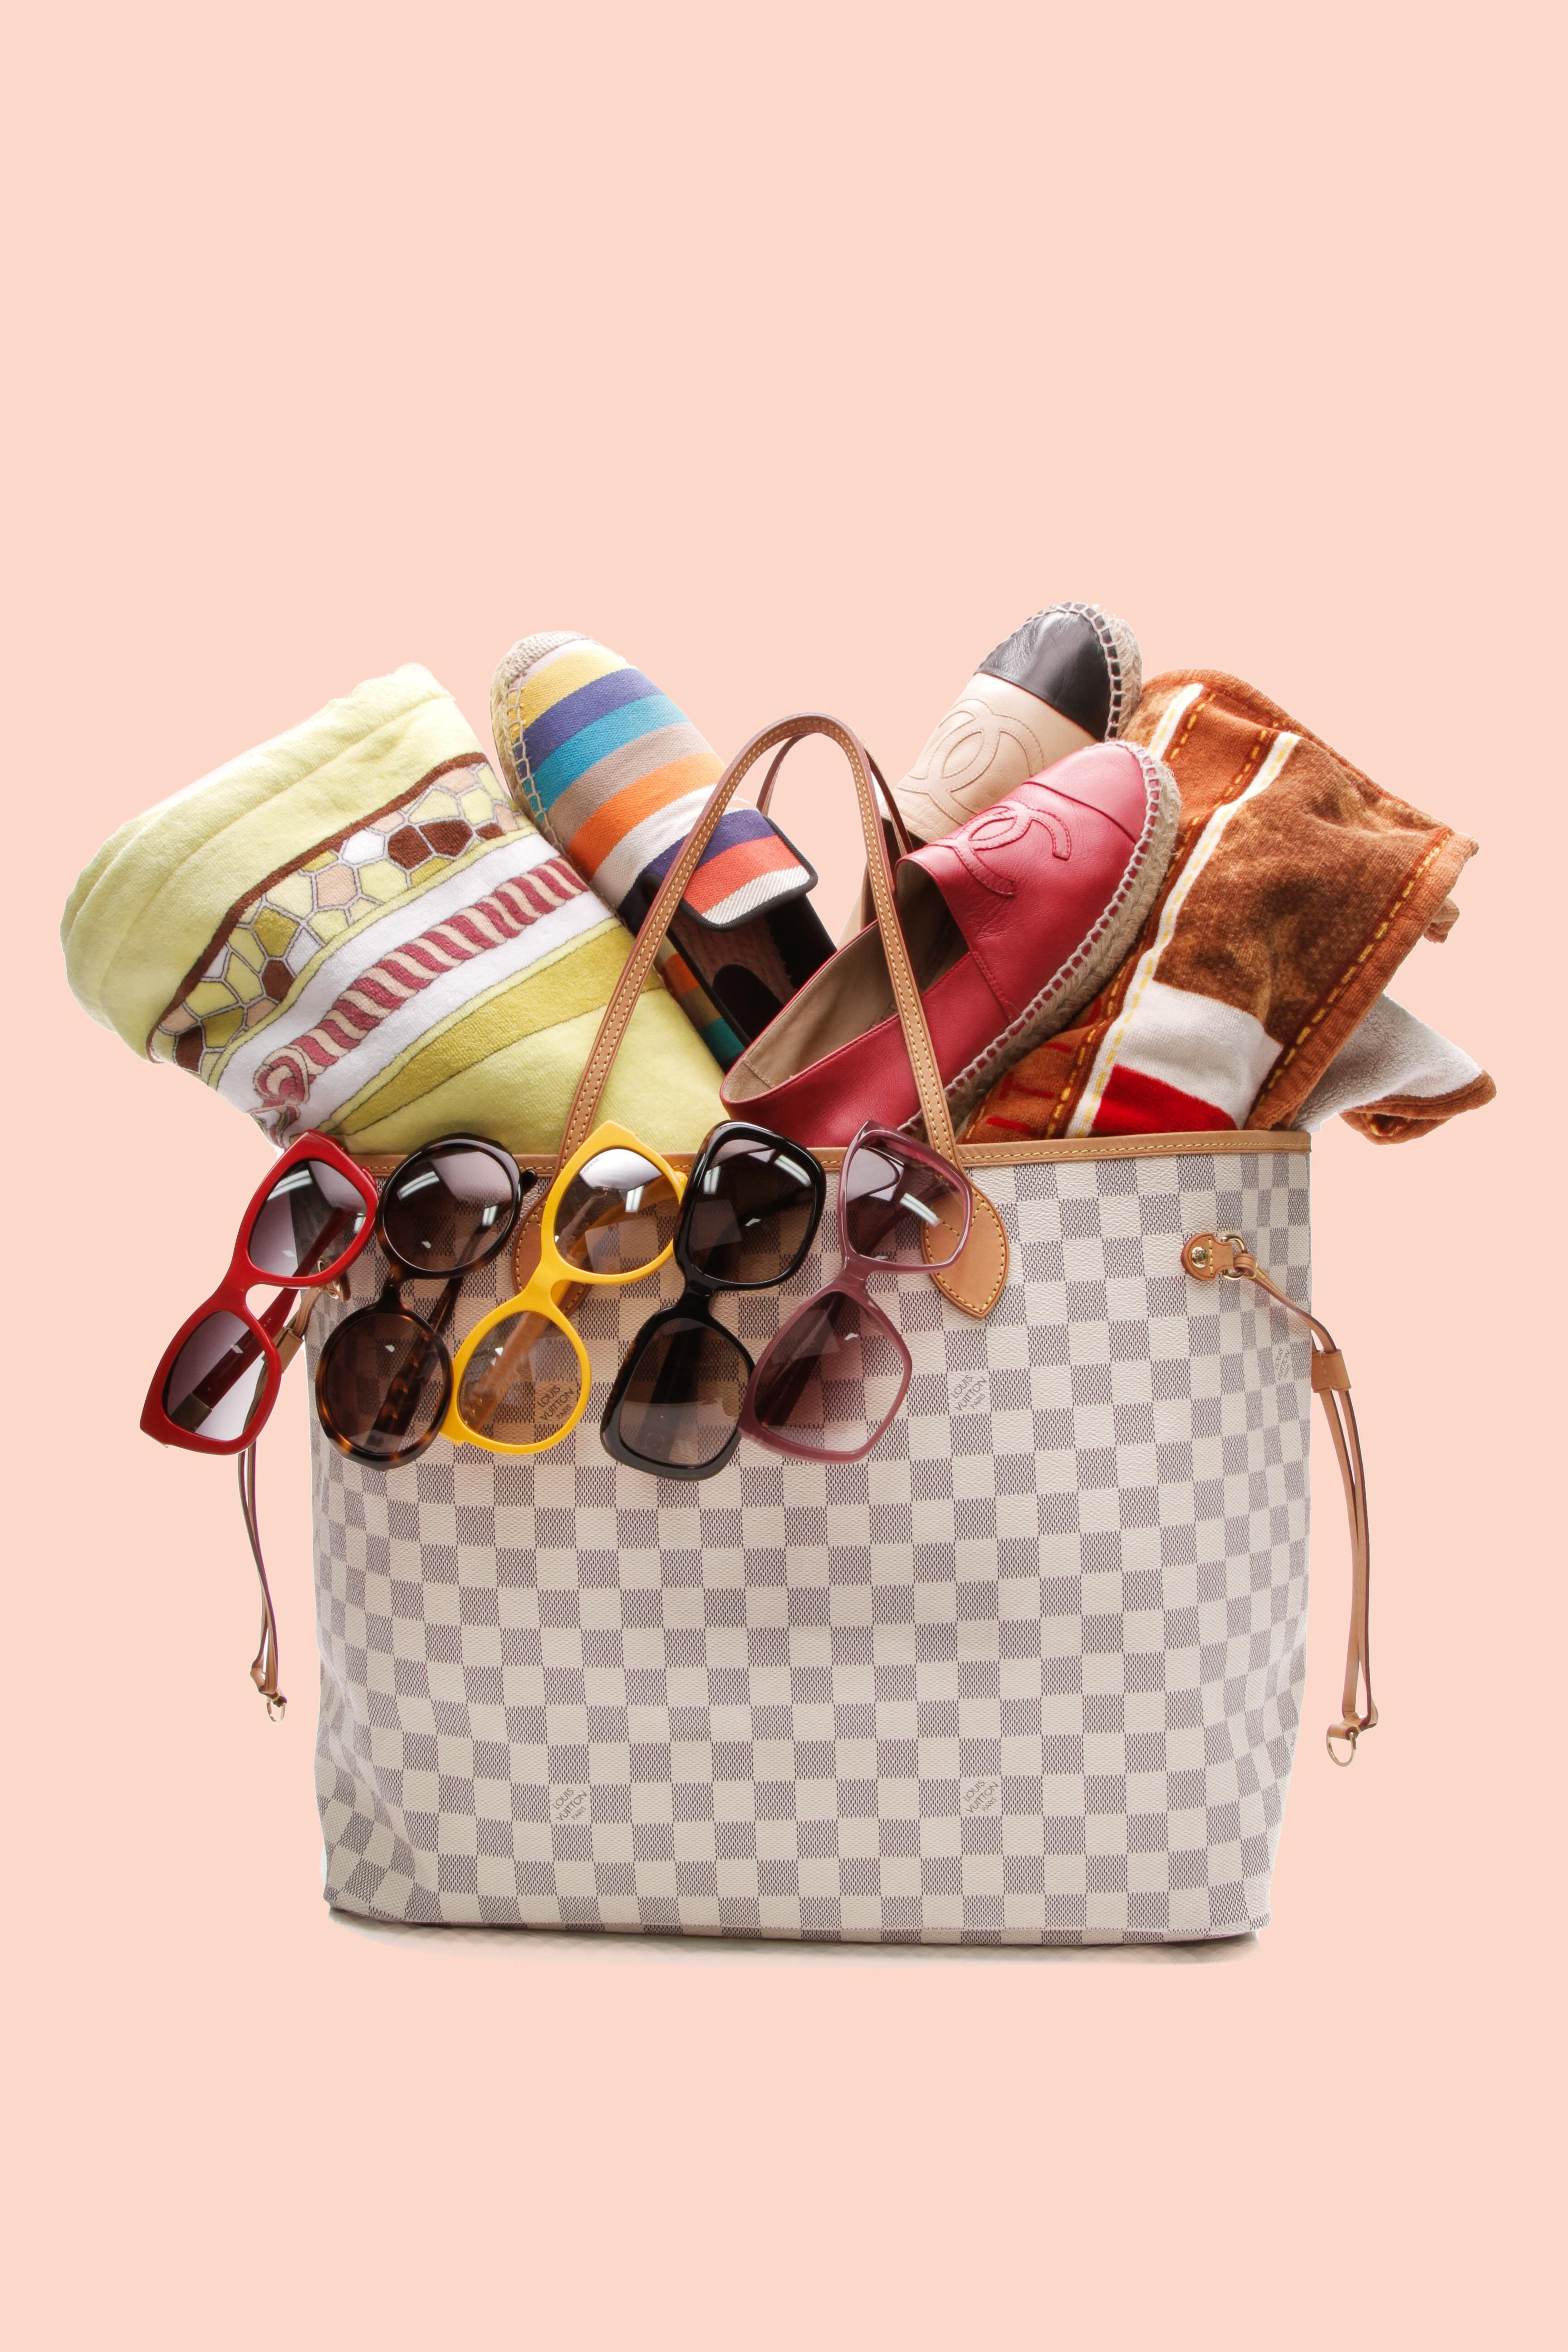 34898f3af055 Are you ready for spring break  Shop our selection of flats and shades to  make your look luxurious. . . .  sunglasses  towel  neverfull  louisvuitton  ...